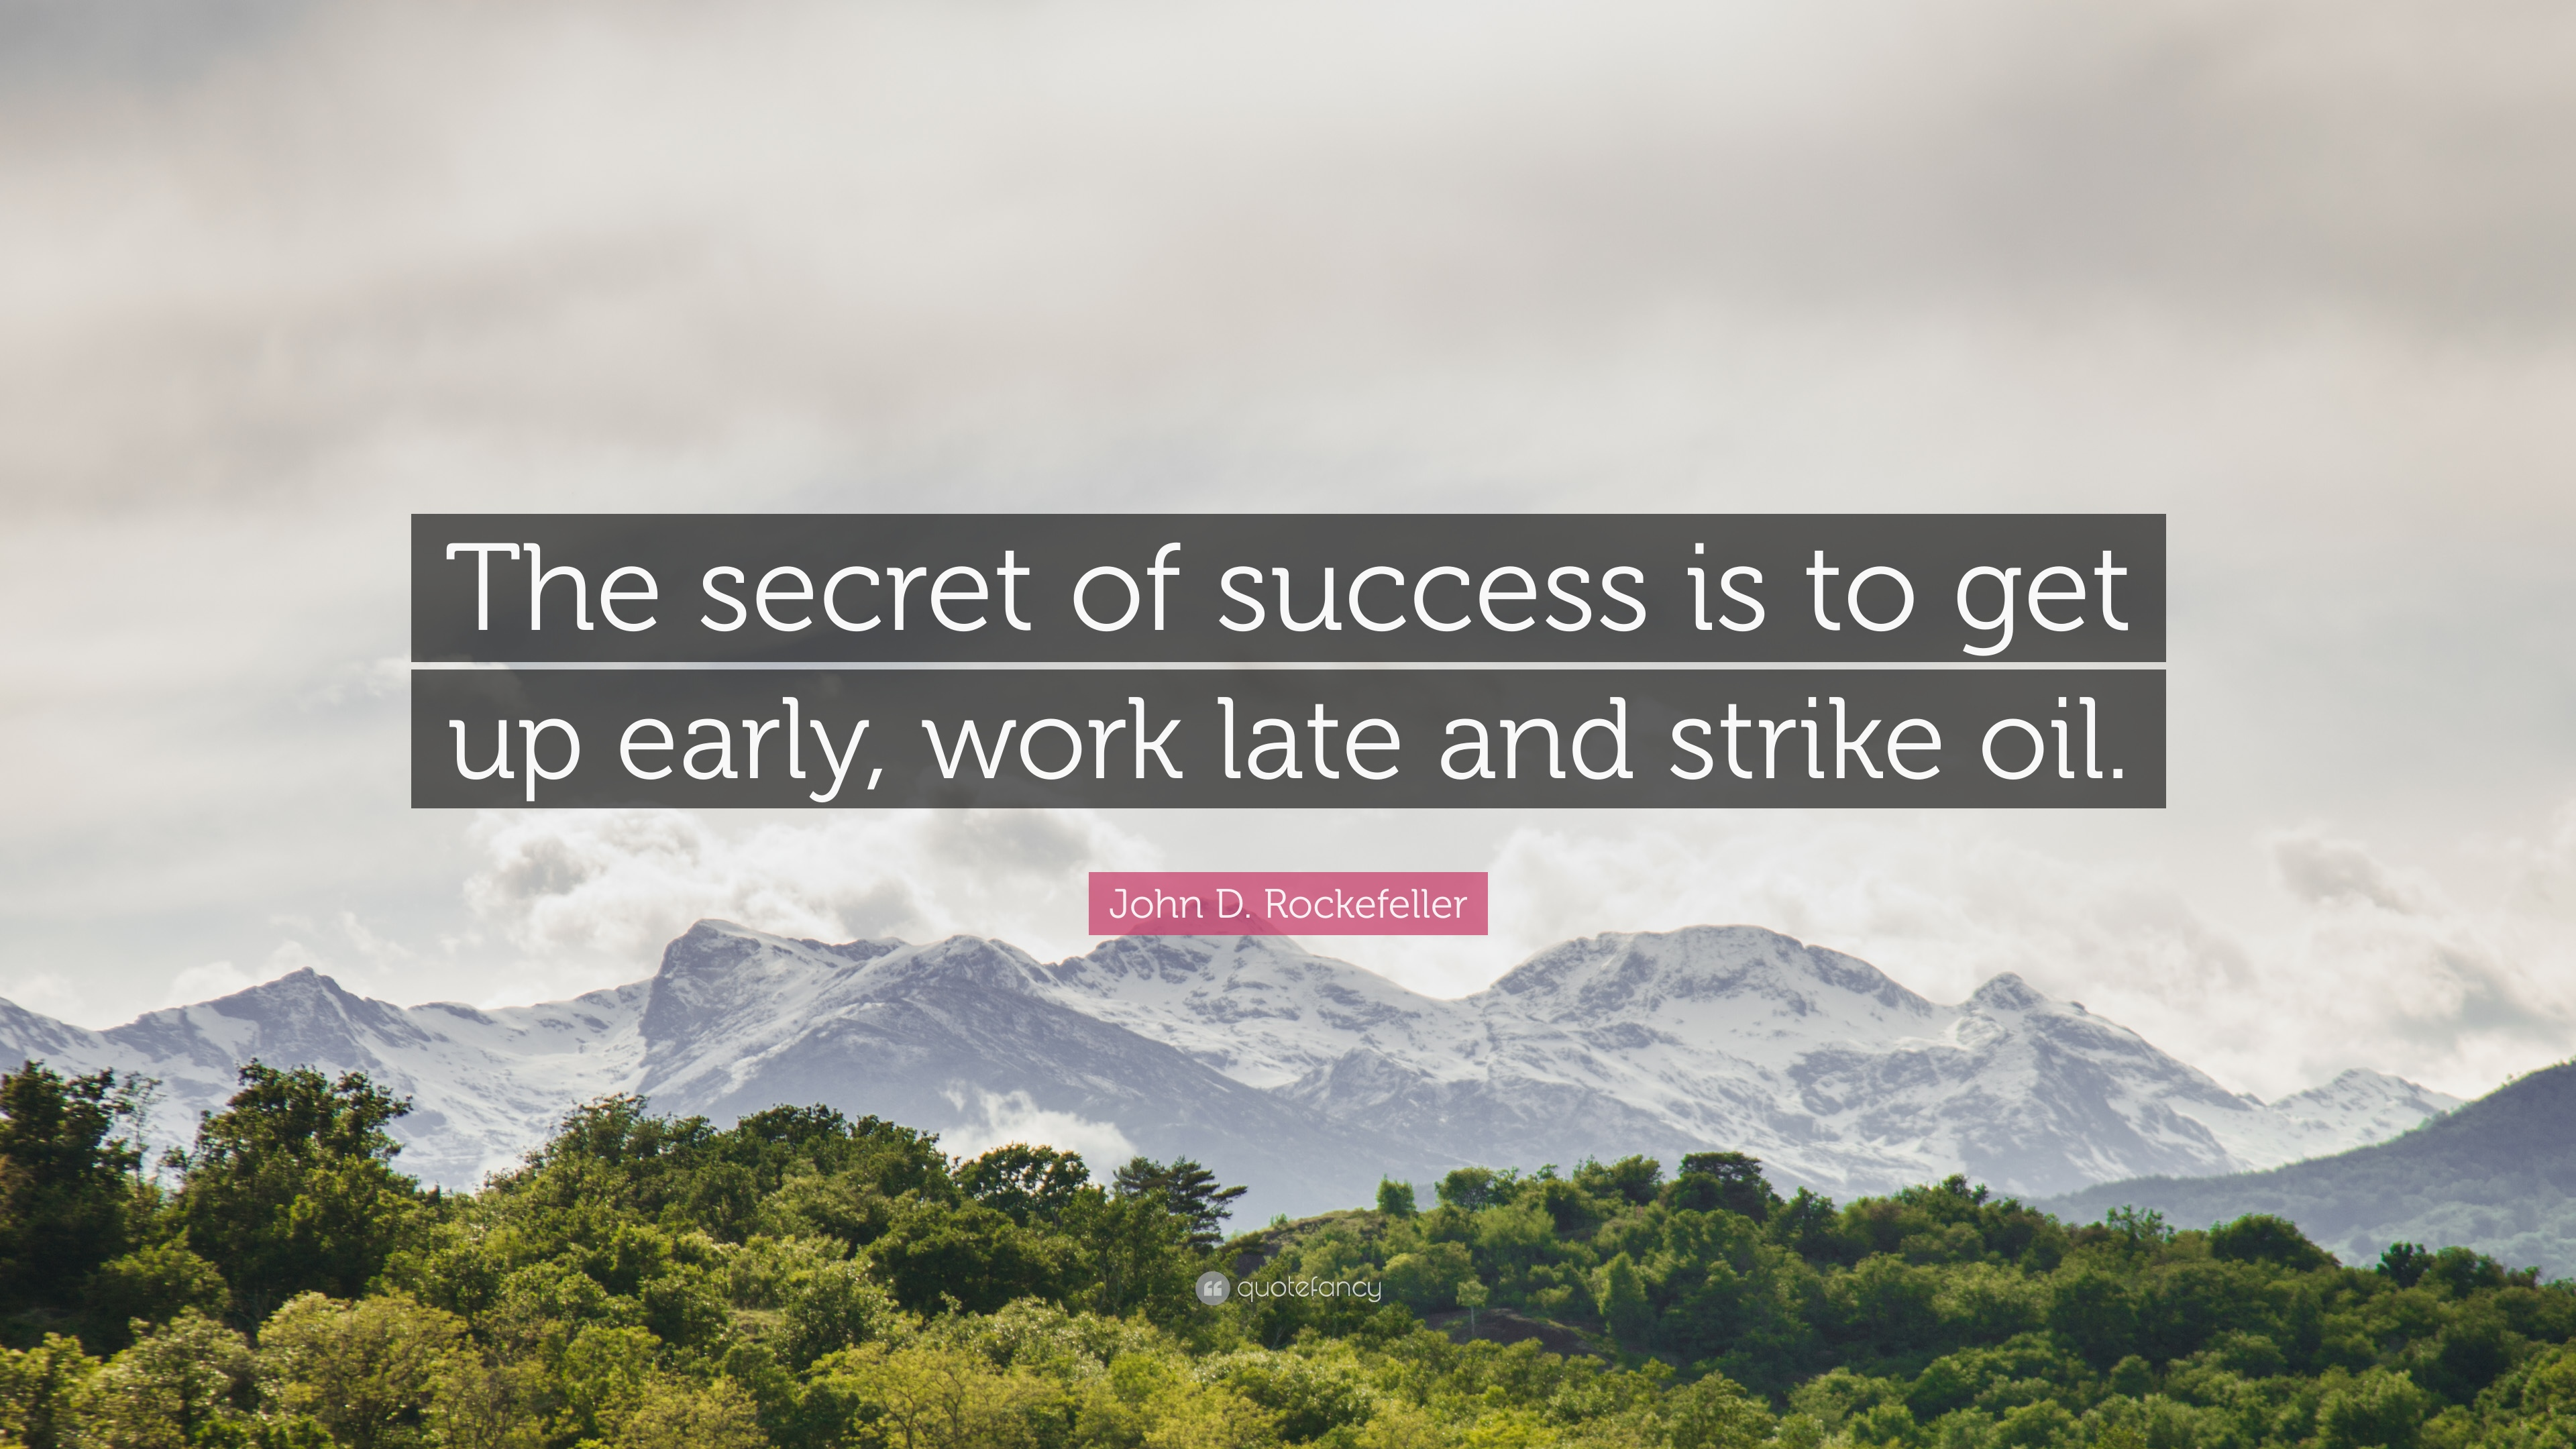 John D Rockefeller Quote The Secret Of Success Is To Get Up Early